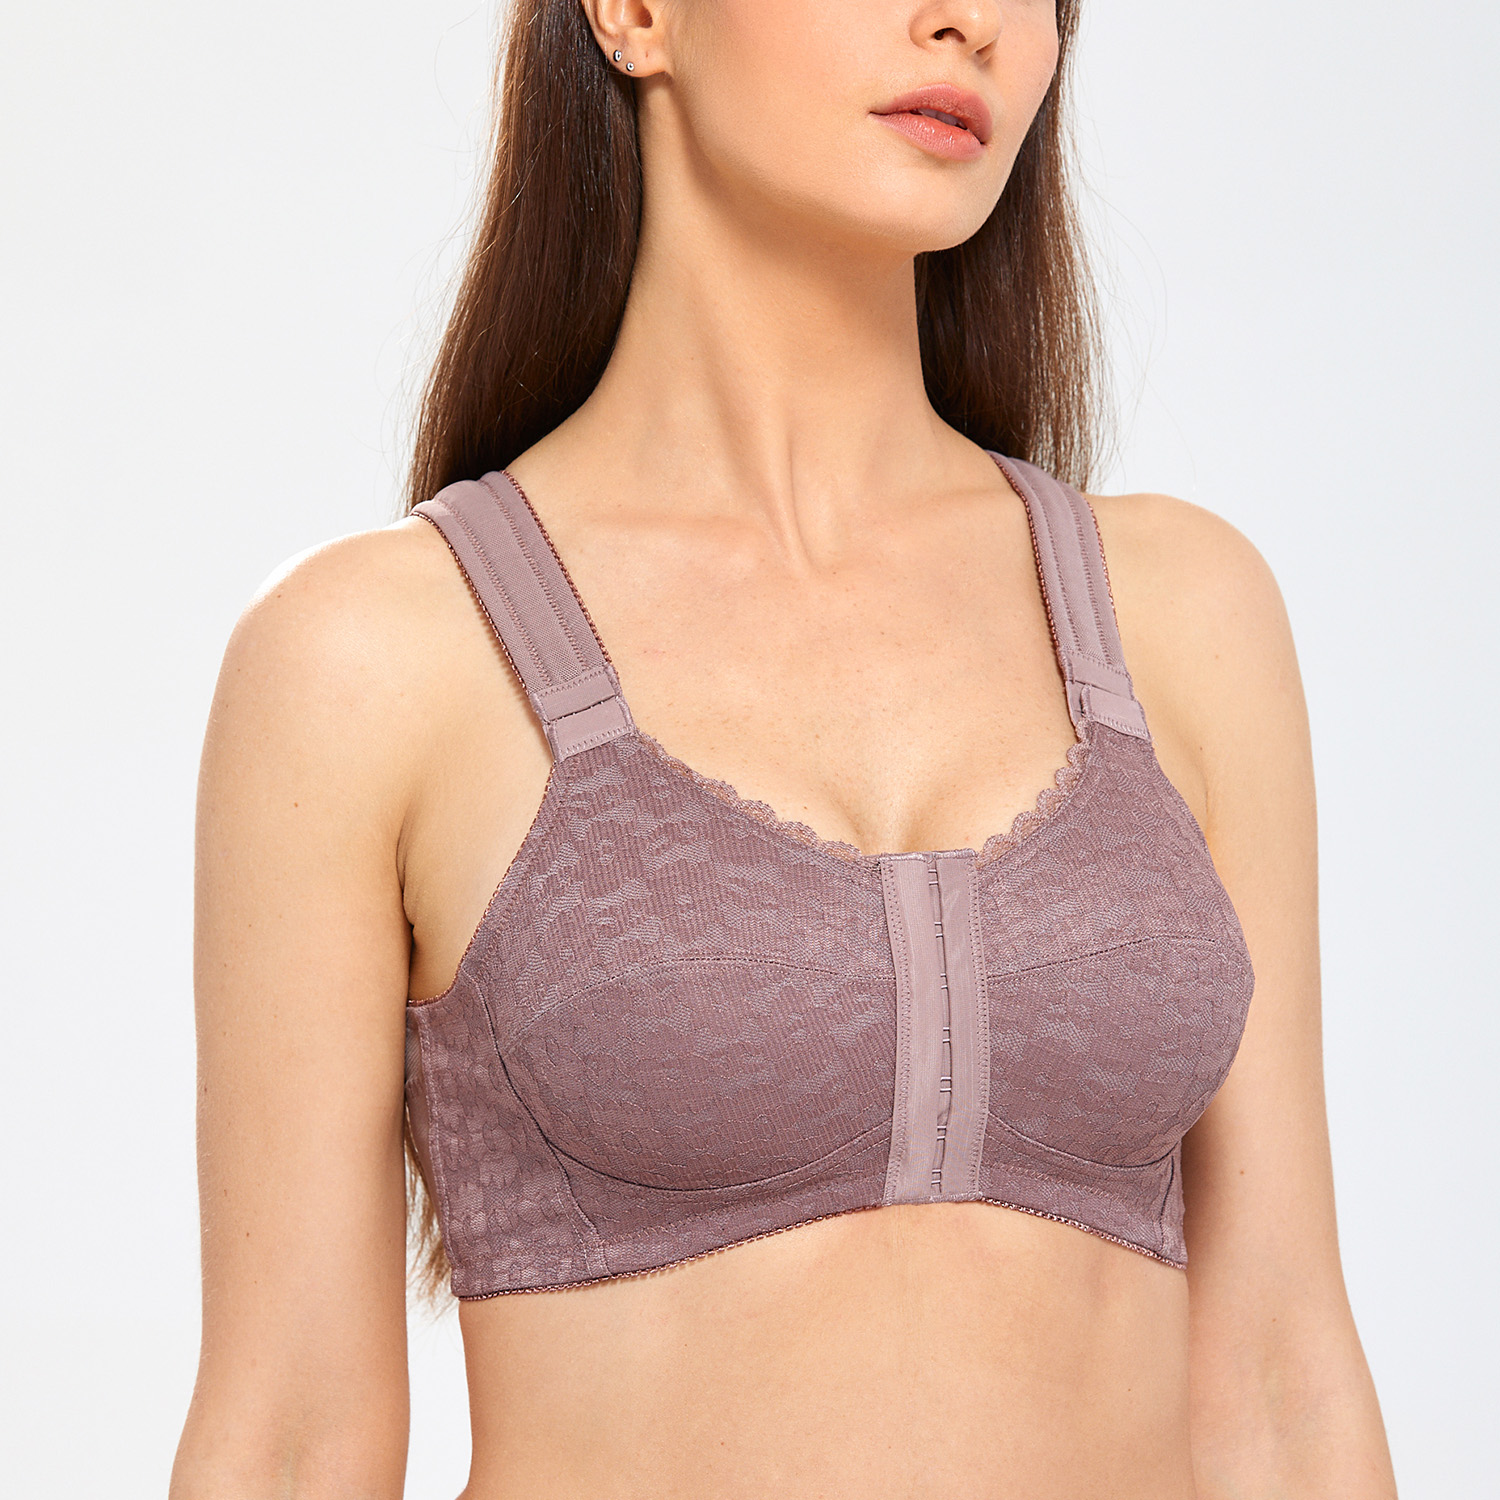 Women-039-s-Full-Coverage-Posture-Corrector-Front-Closure-Wireless-Back-Support-Bra thumbnail 13